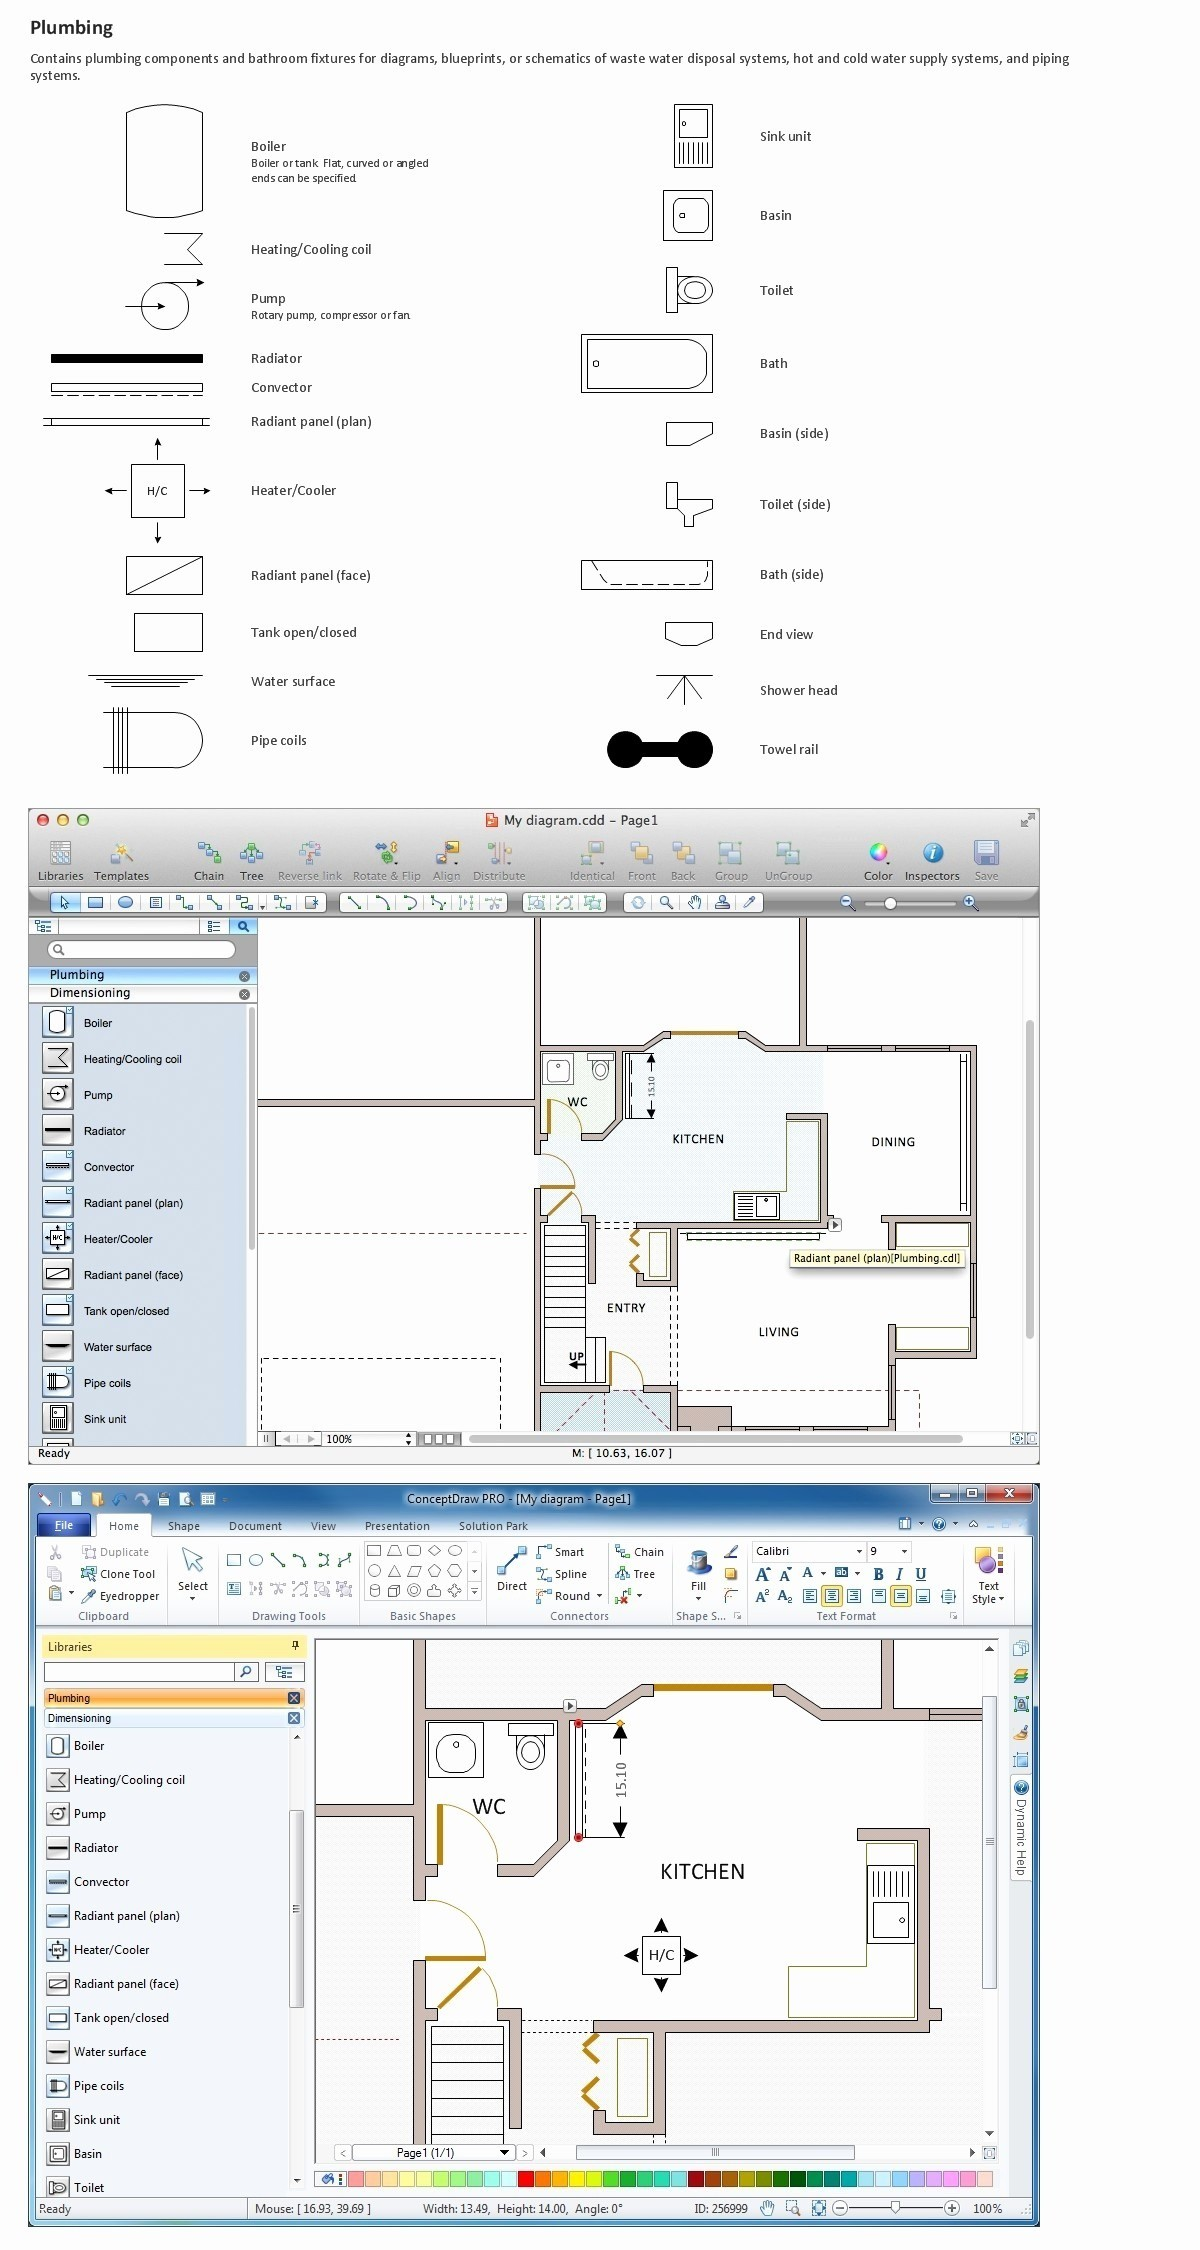 House Wiring Diagram software Unique Rm4 Wiring Diagram Wiring Schematic Database